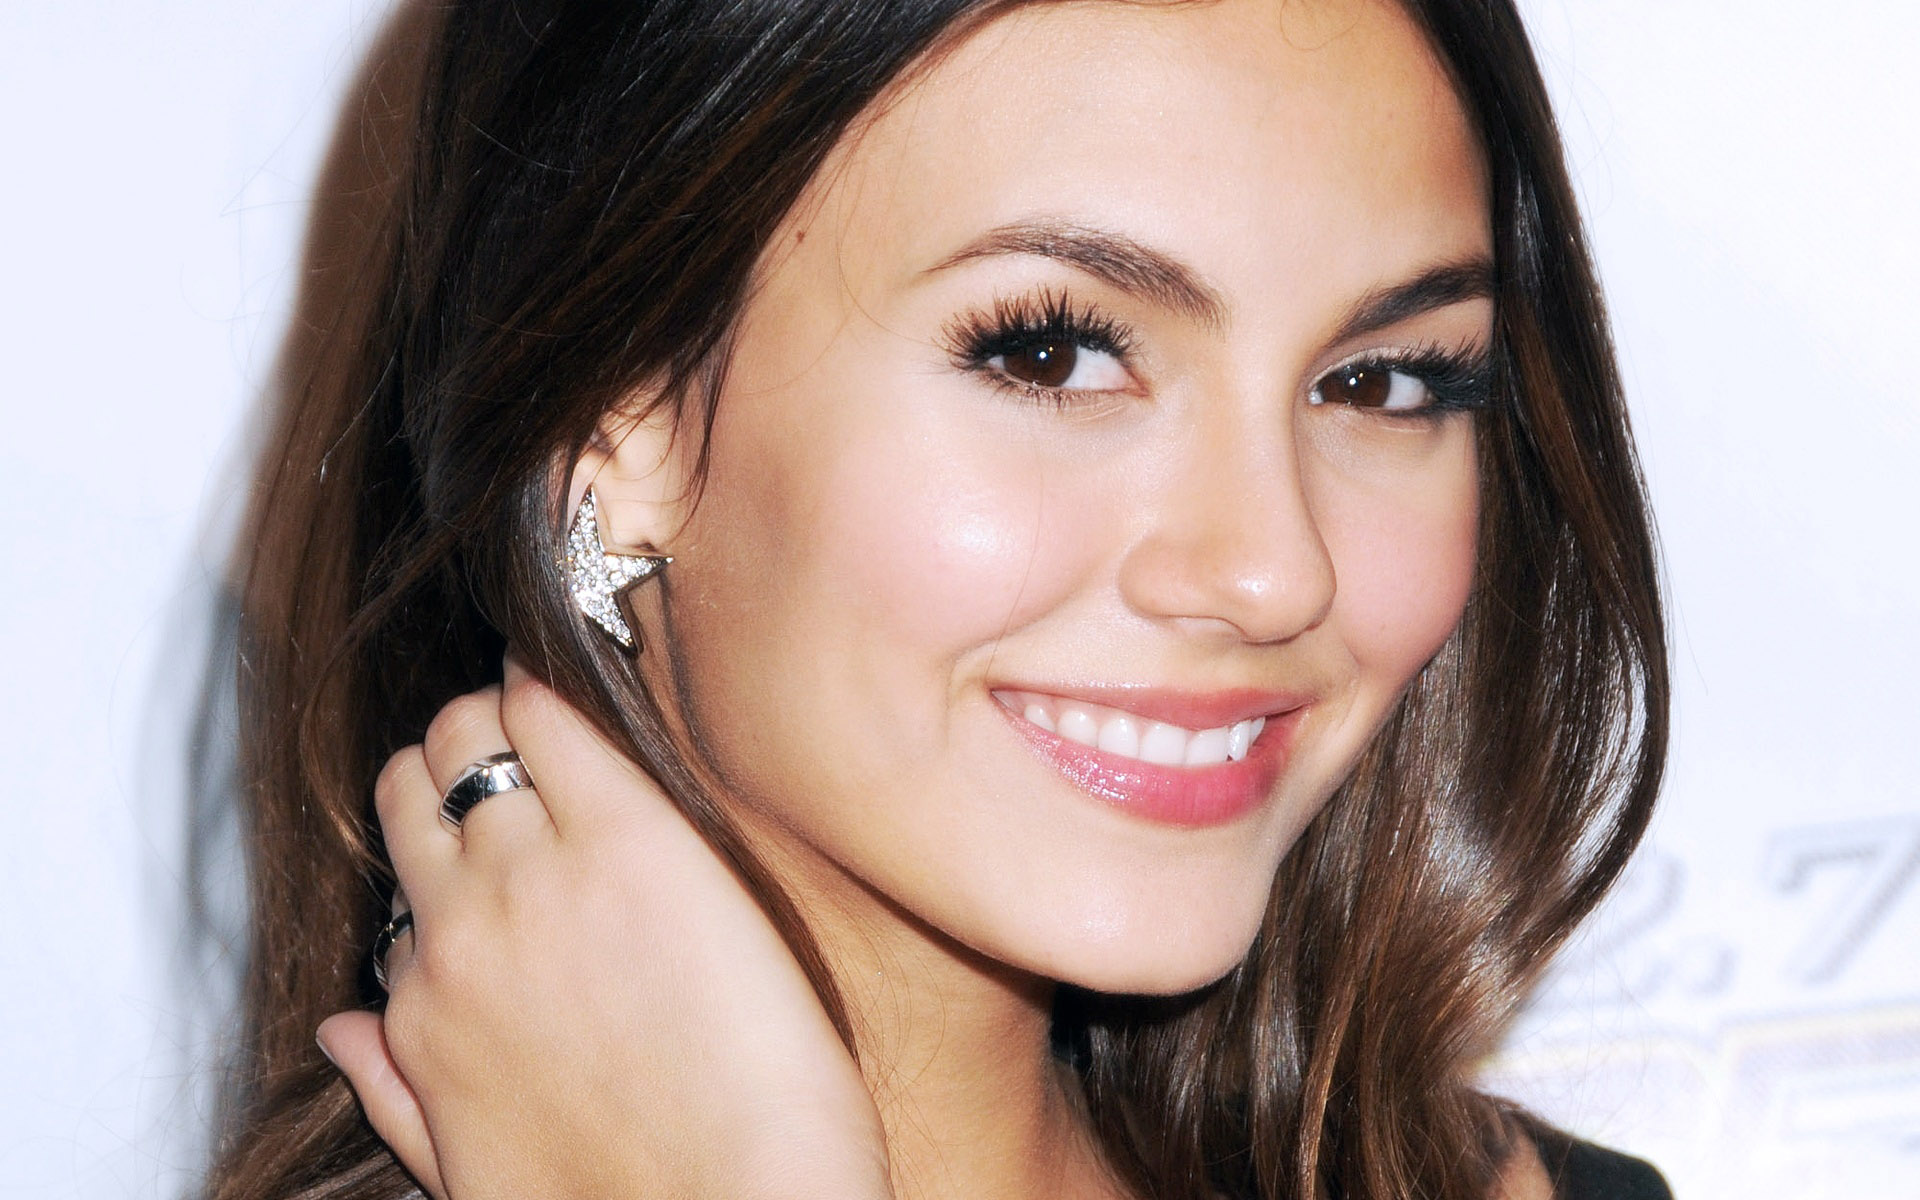 Cute Victoria Justice Smiling Face Free Hd Deskop Mobile Background Wallpaper